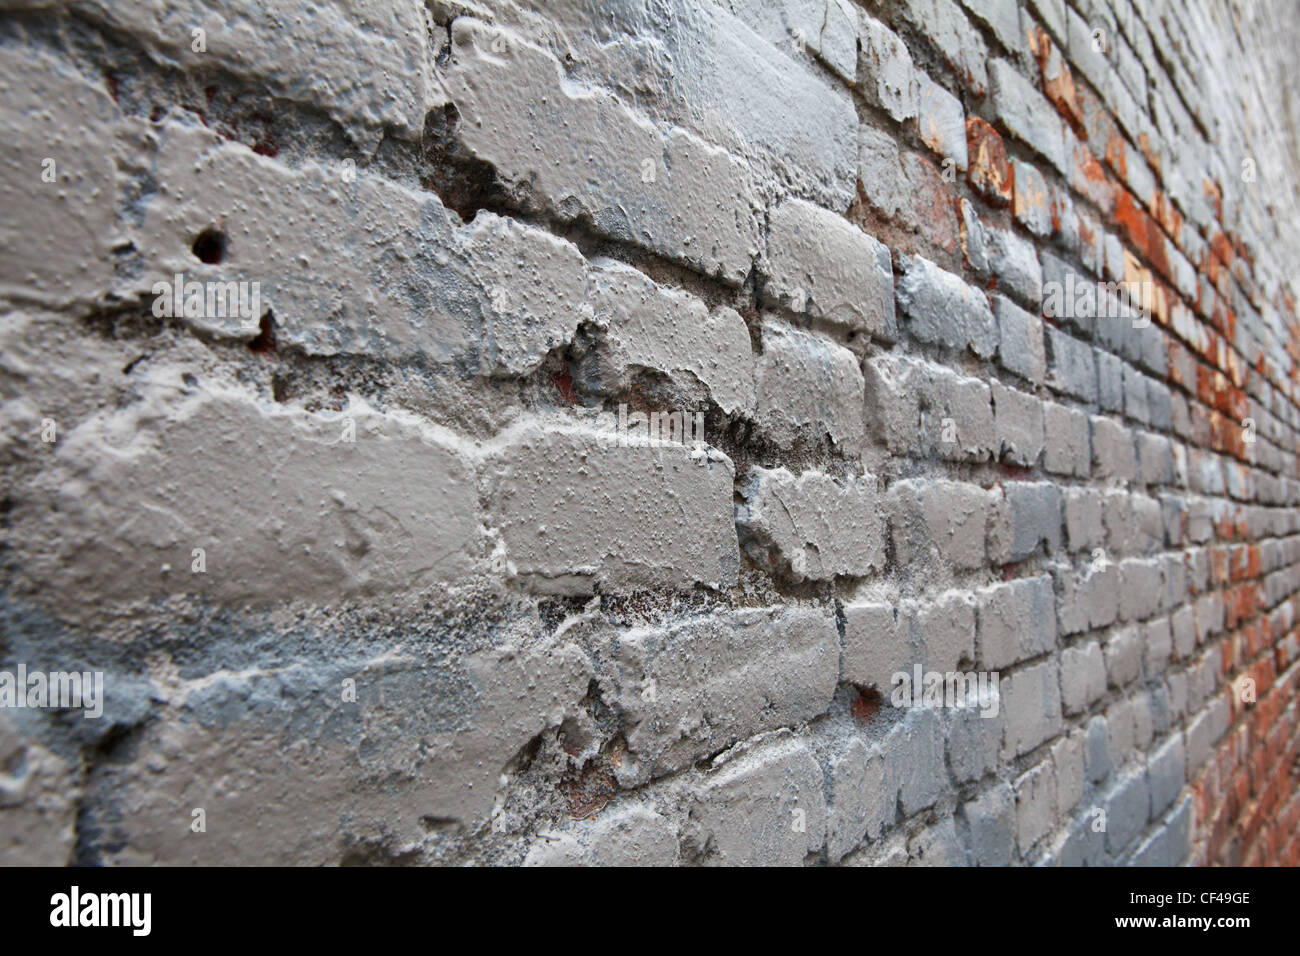 Weathered and worn Gray Brick in Perspective diminishing to the right - Stock Image